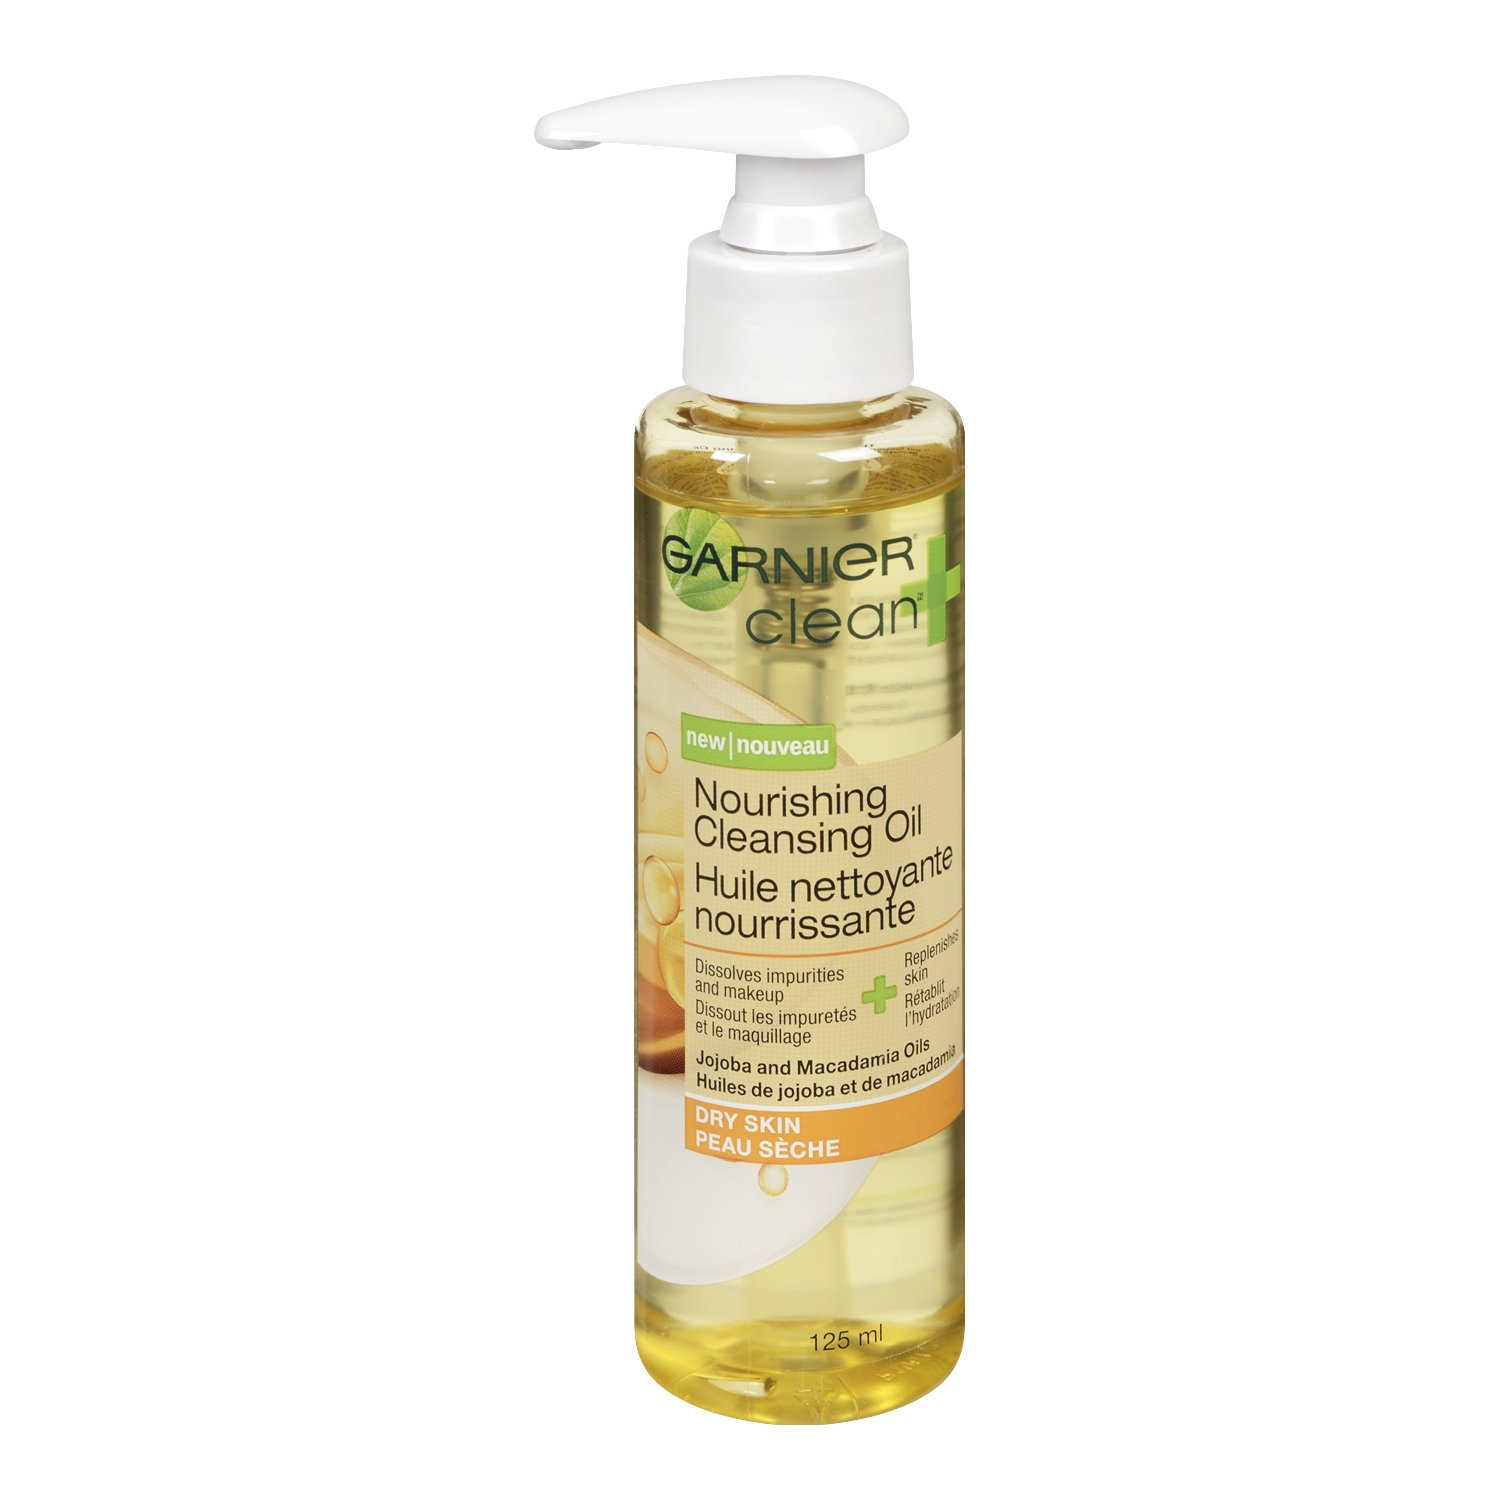 Garnier Clean+ Nourishing Cleansing Oil For Dry Skin, 4.2 Fluid Ounces